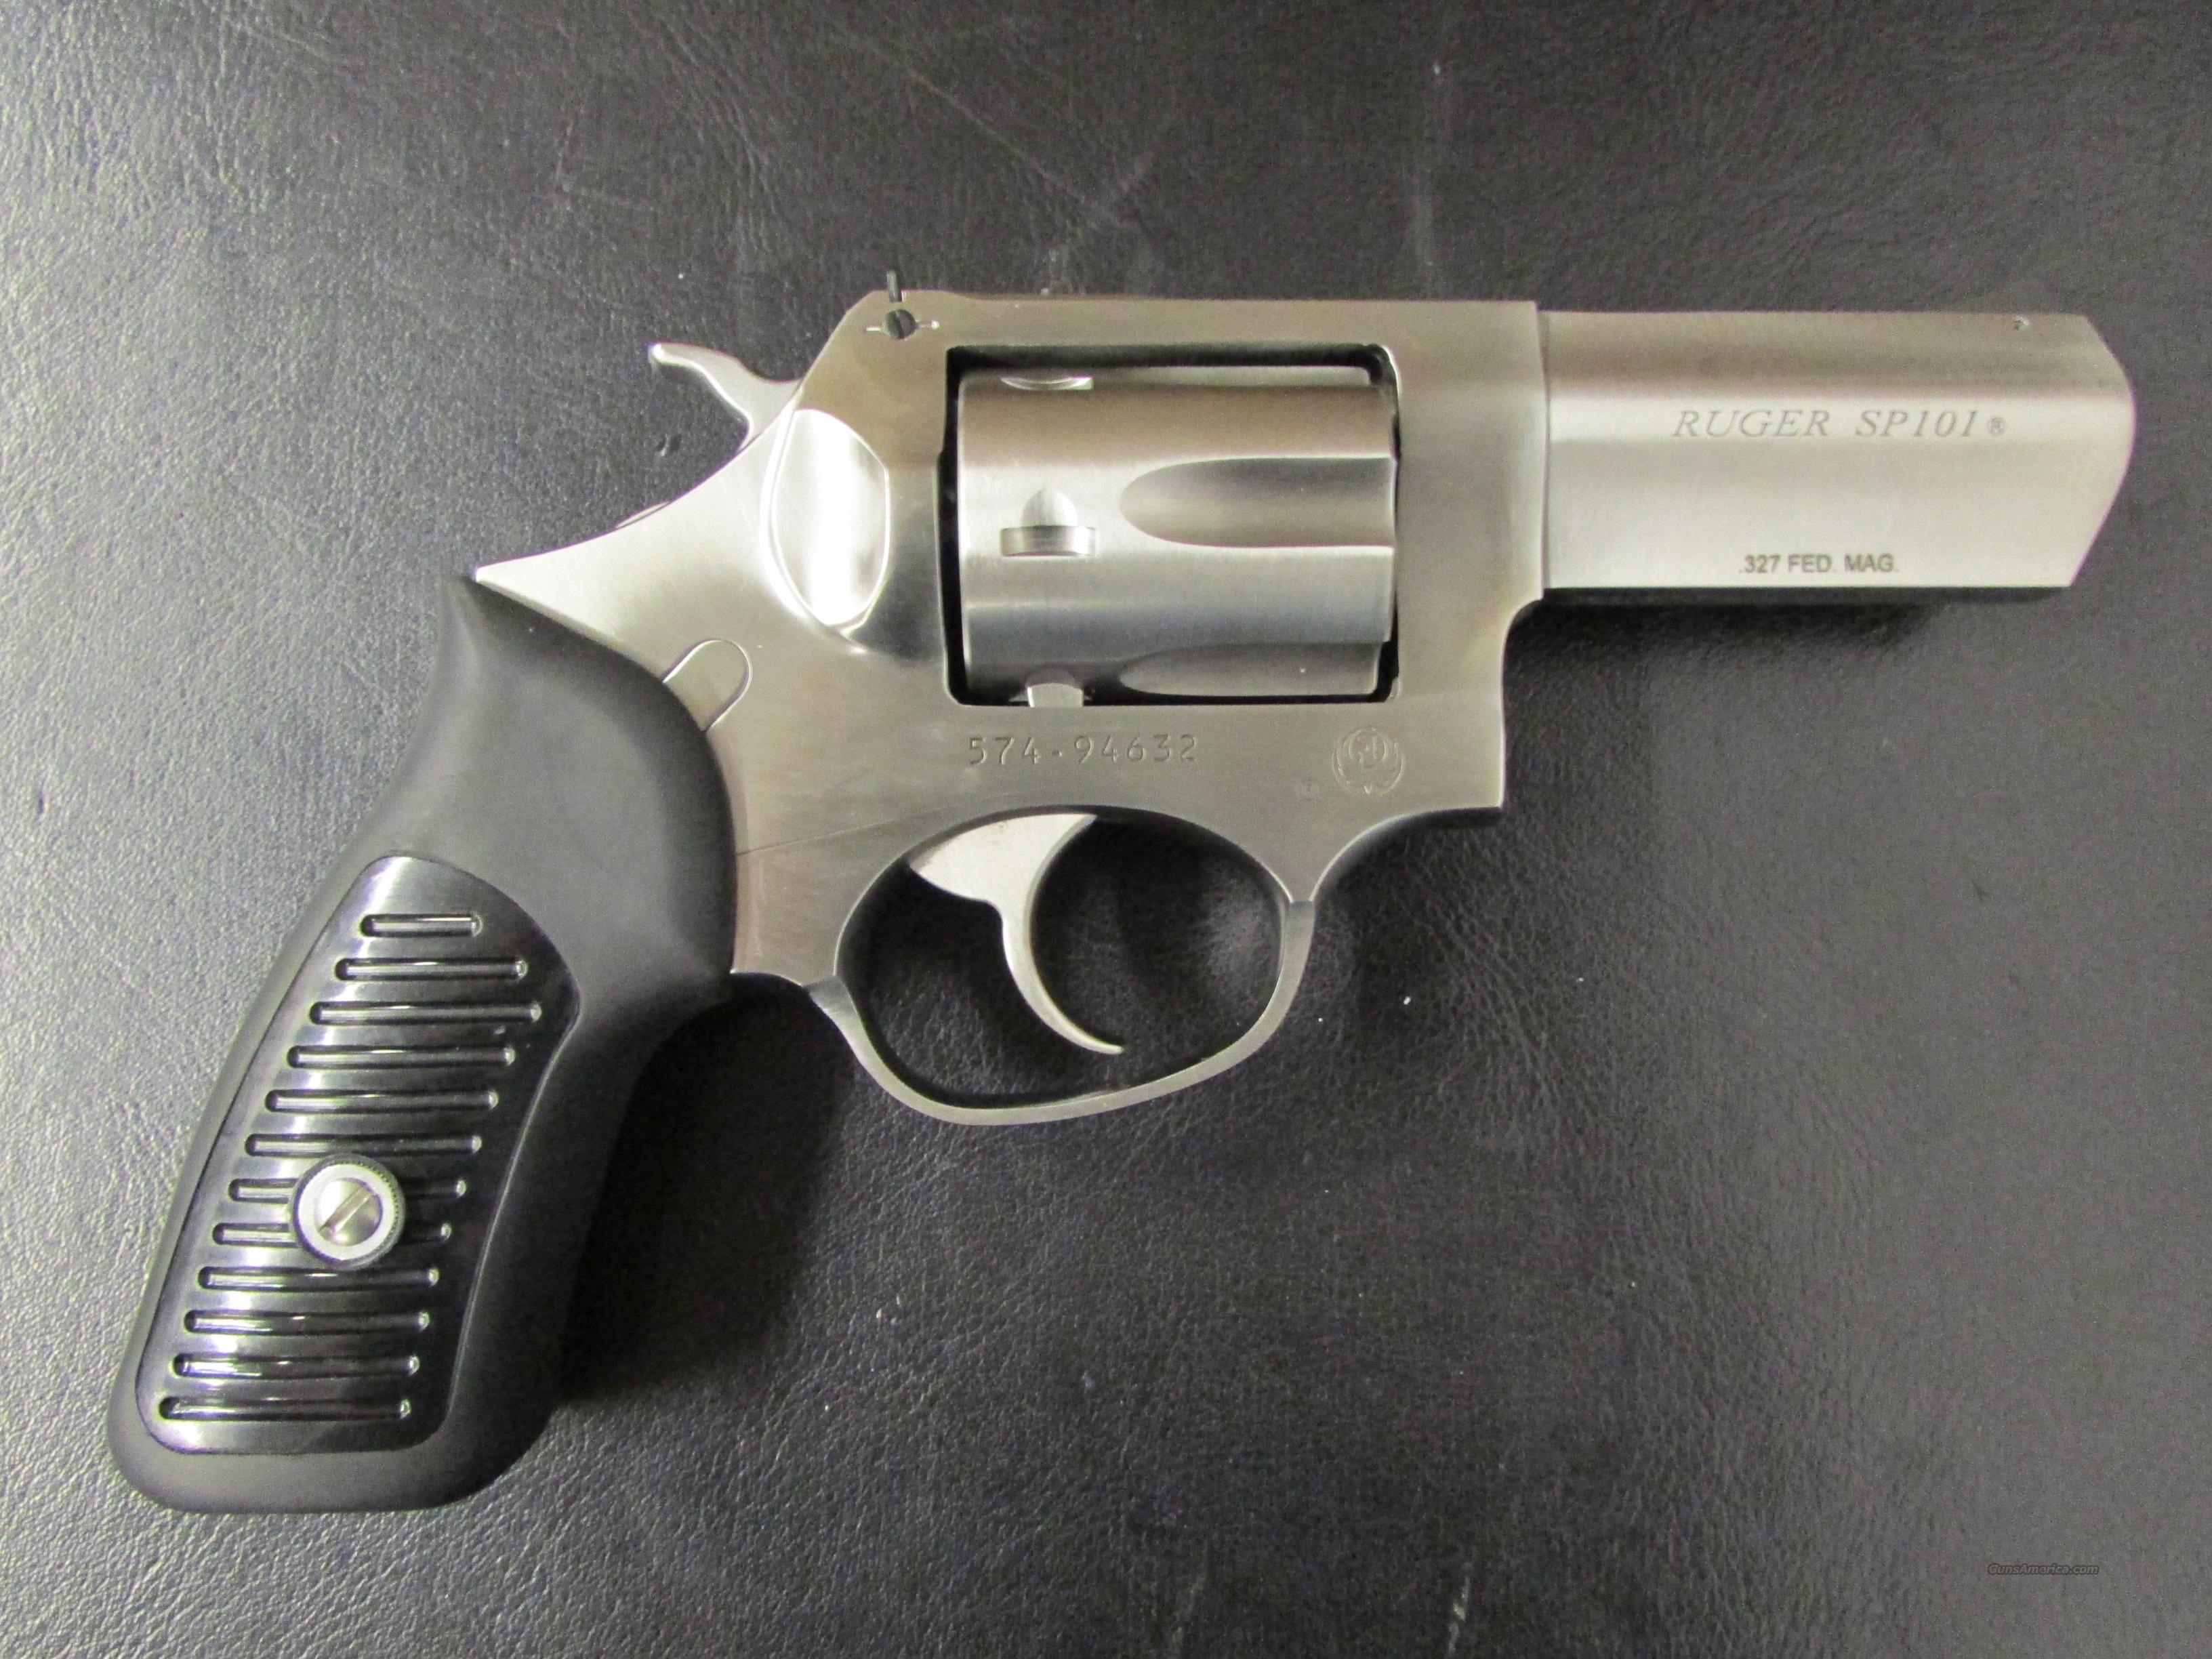 Ruger sp101 double action 327 federal magnum for sale 963442144